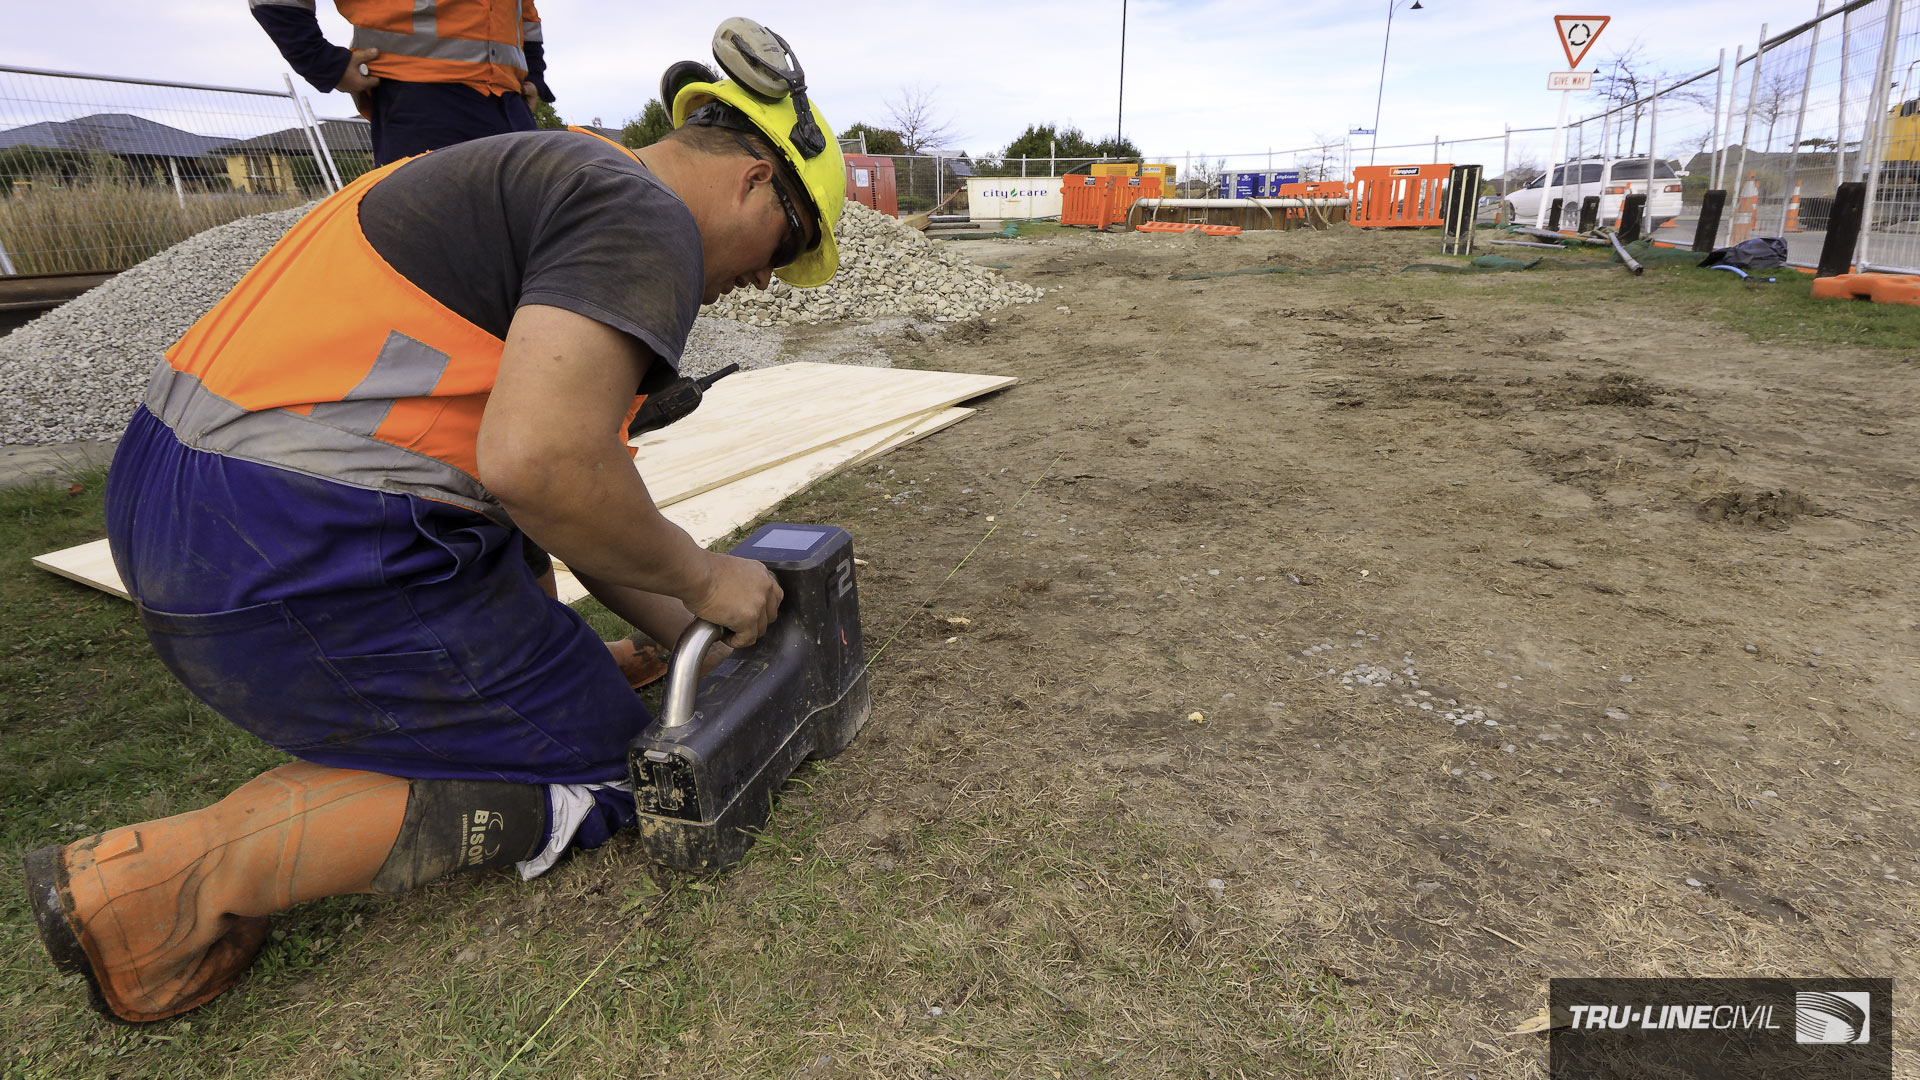 Horizontal Directional Drilling, Tru-Line Civil, documentary photography, Parklands West, Christchurch, New Zealand, Gravity Wastewater Replacement, HDD